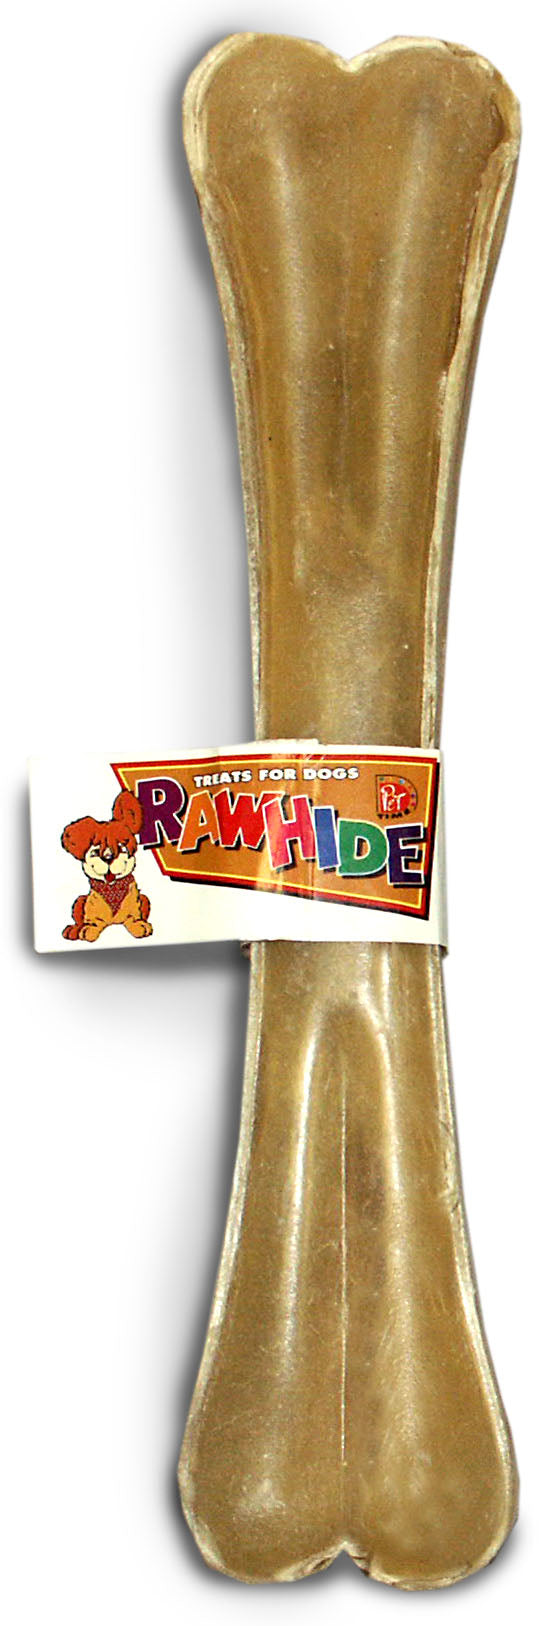 Cadet Pressed Rawhide Bone Dog Treats 12 Inch X 1 Count